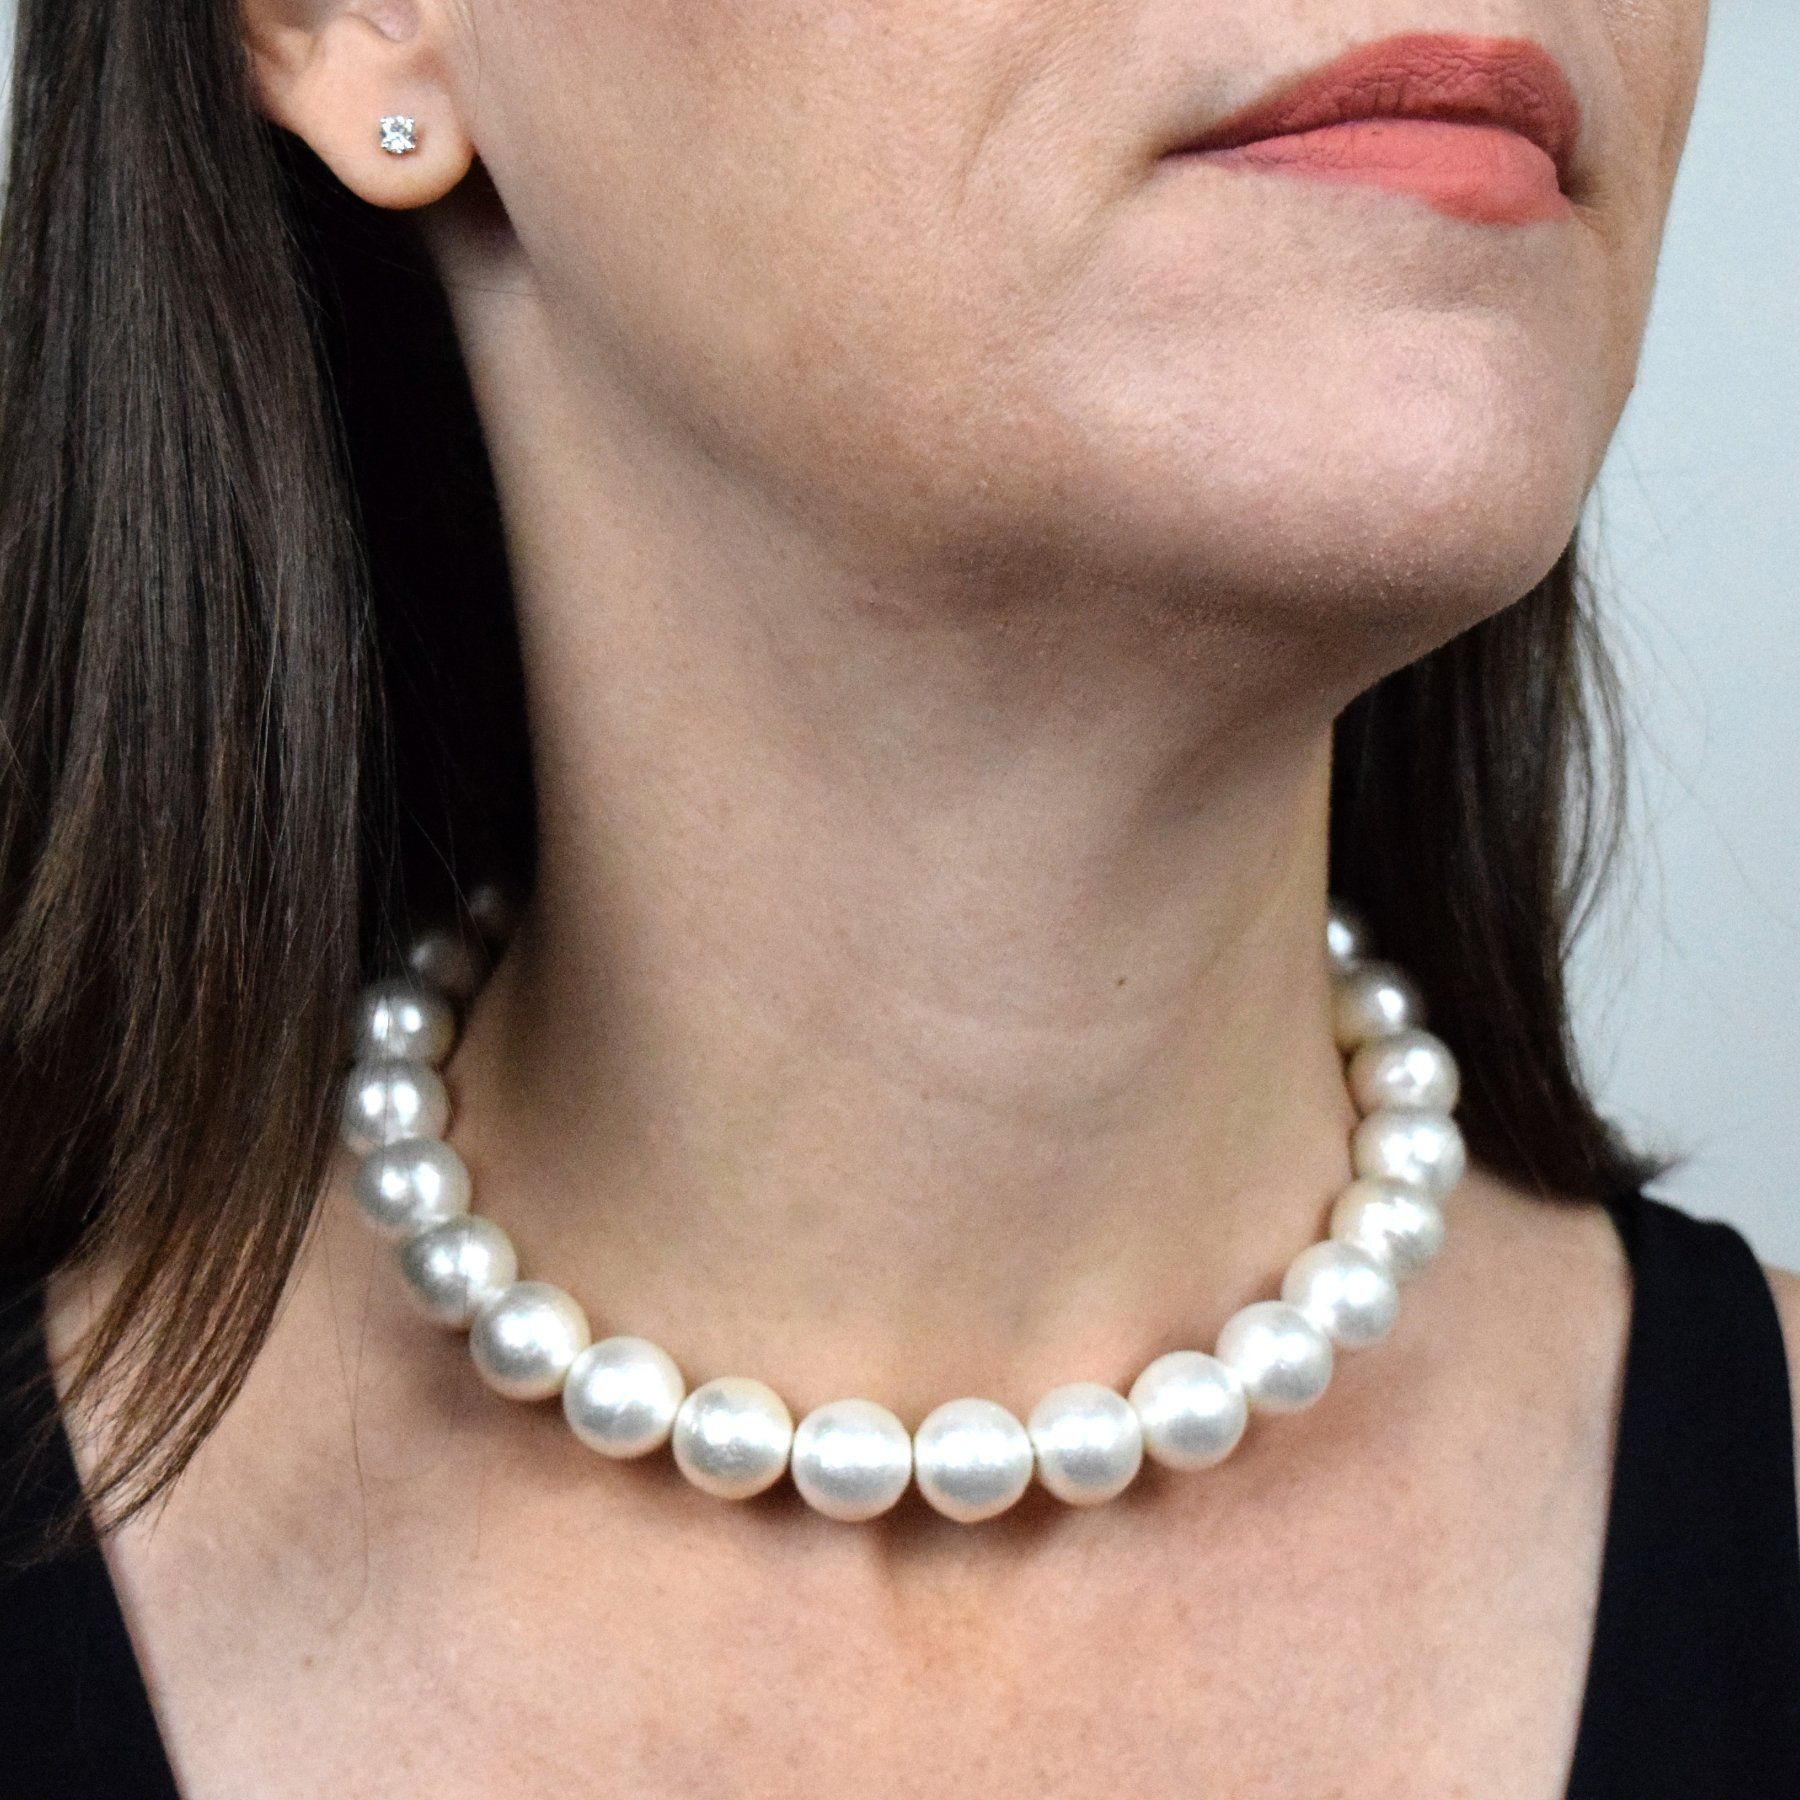 model wearing chunky white pearl choker necklace on neck.